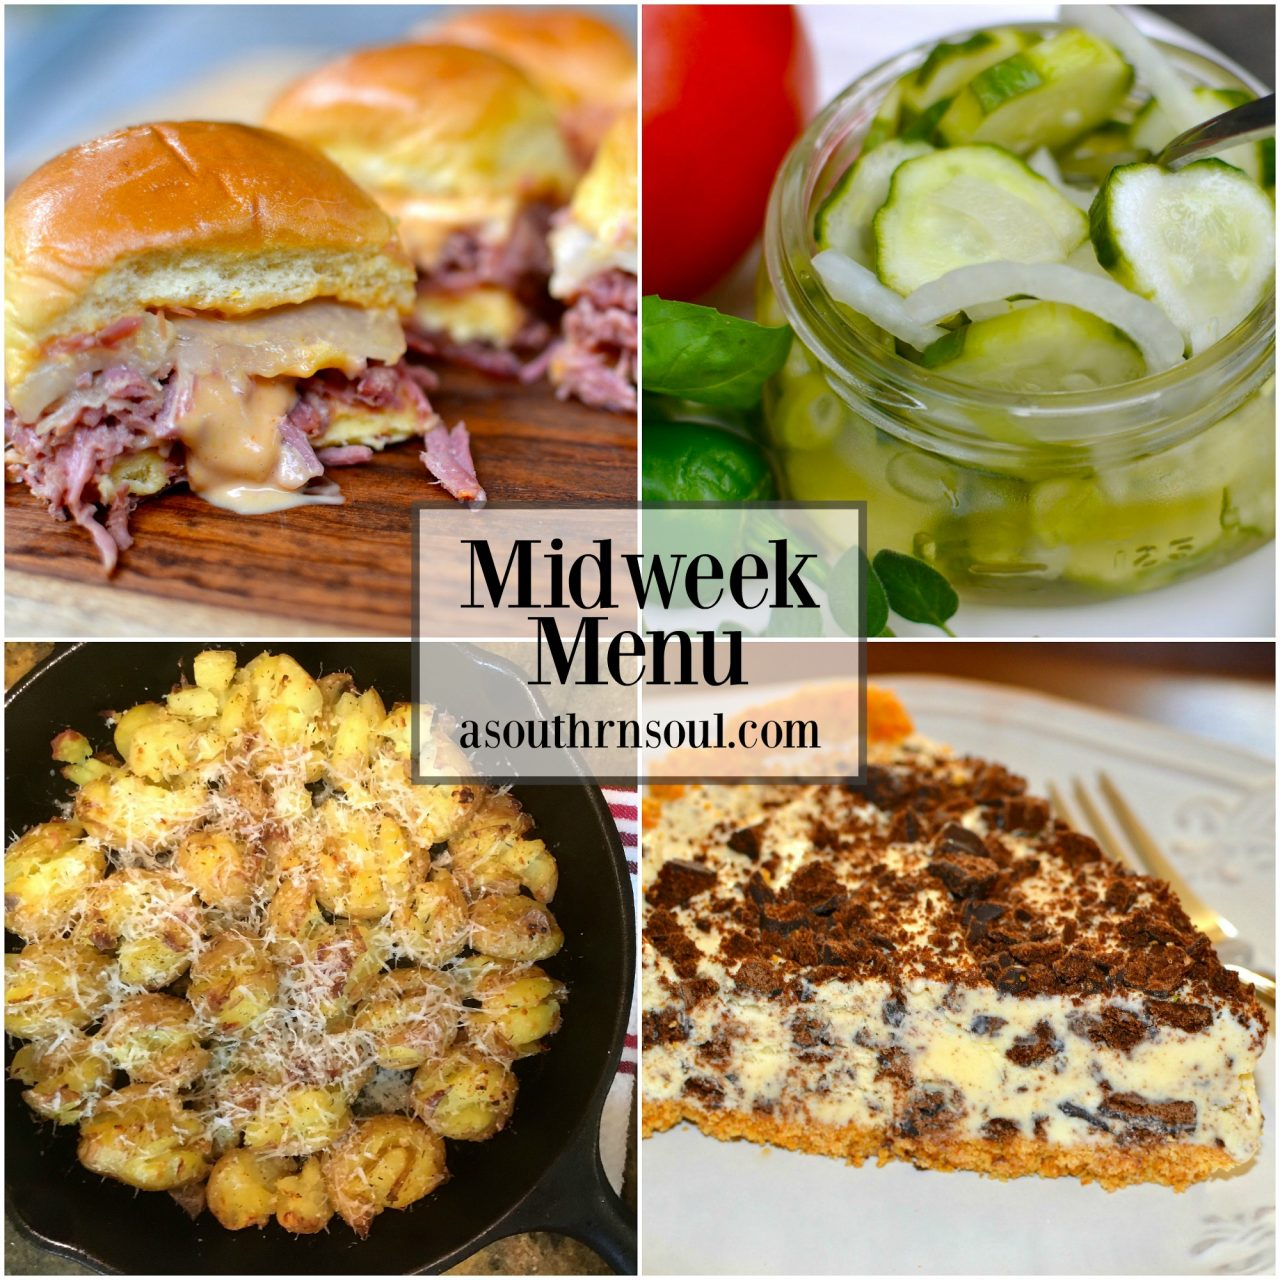 Midweek Menu #10 ~ Crock Pot Corned Beef Reuben Sliders